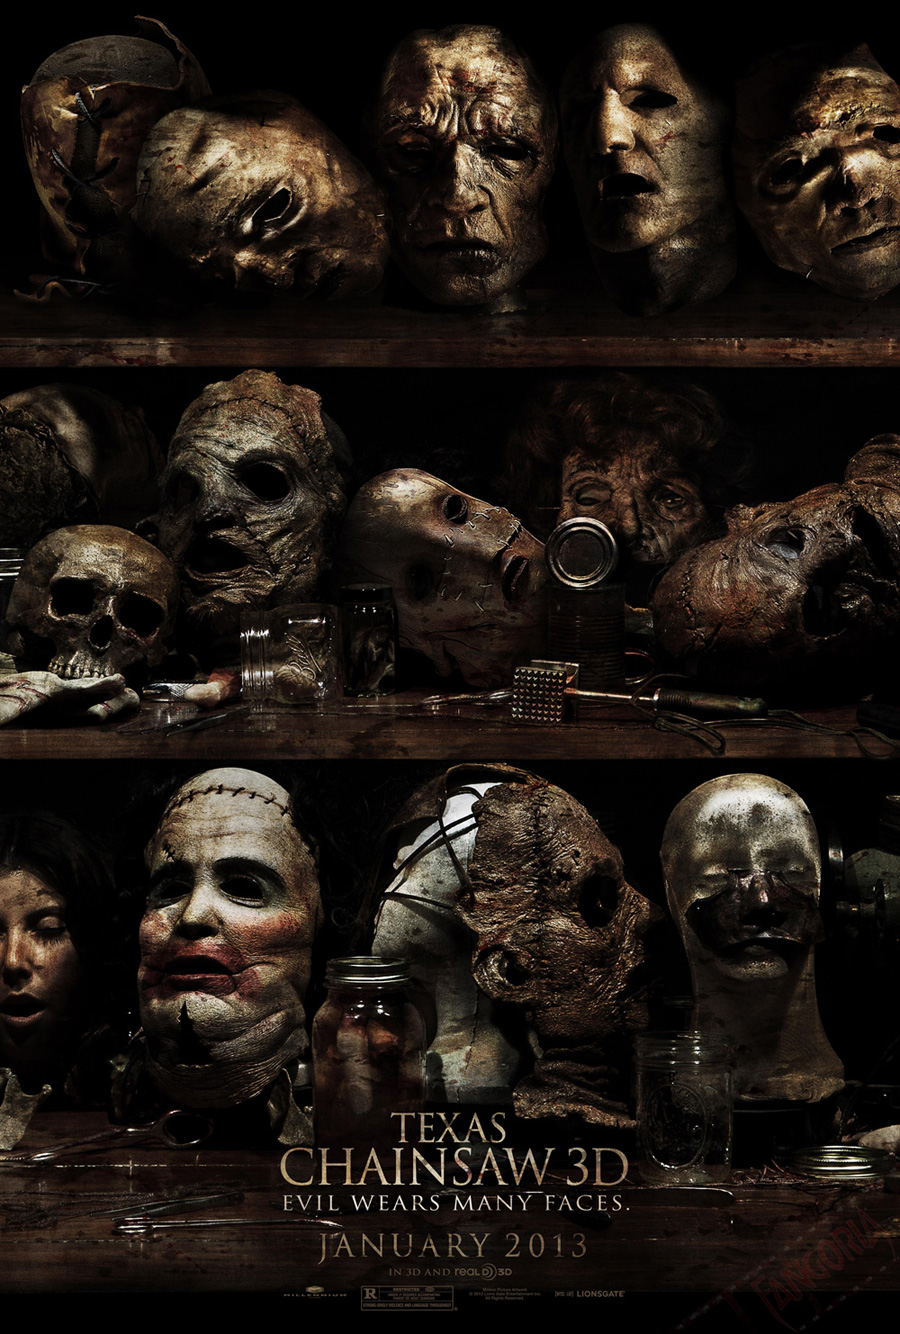 texas-chainsaw-3d-poster.jpg